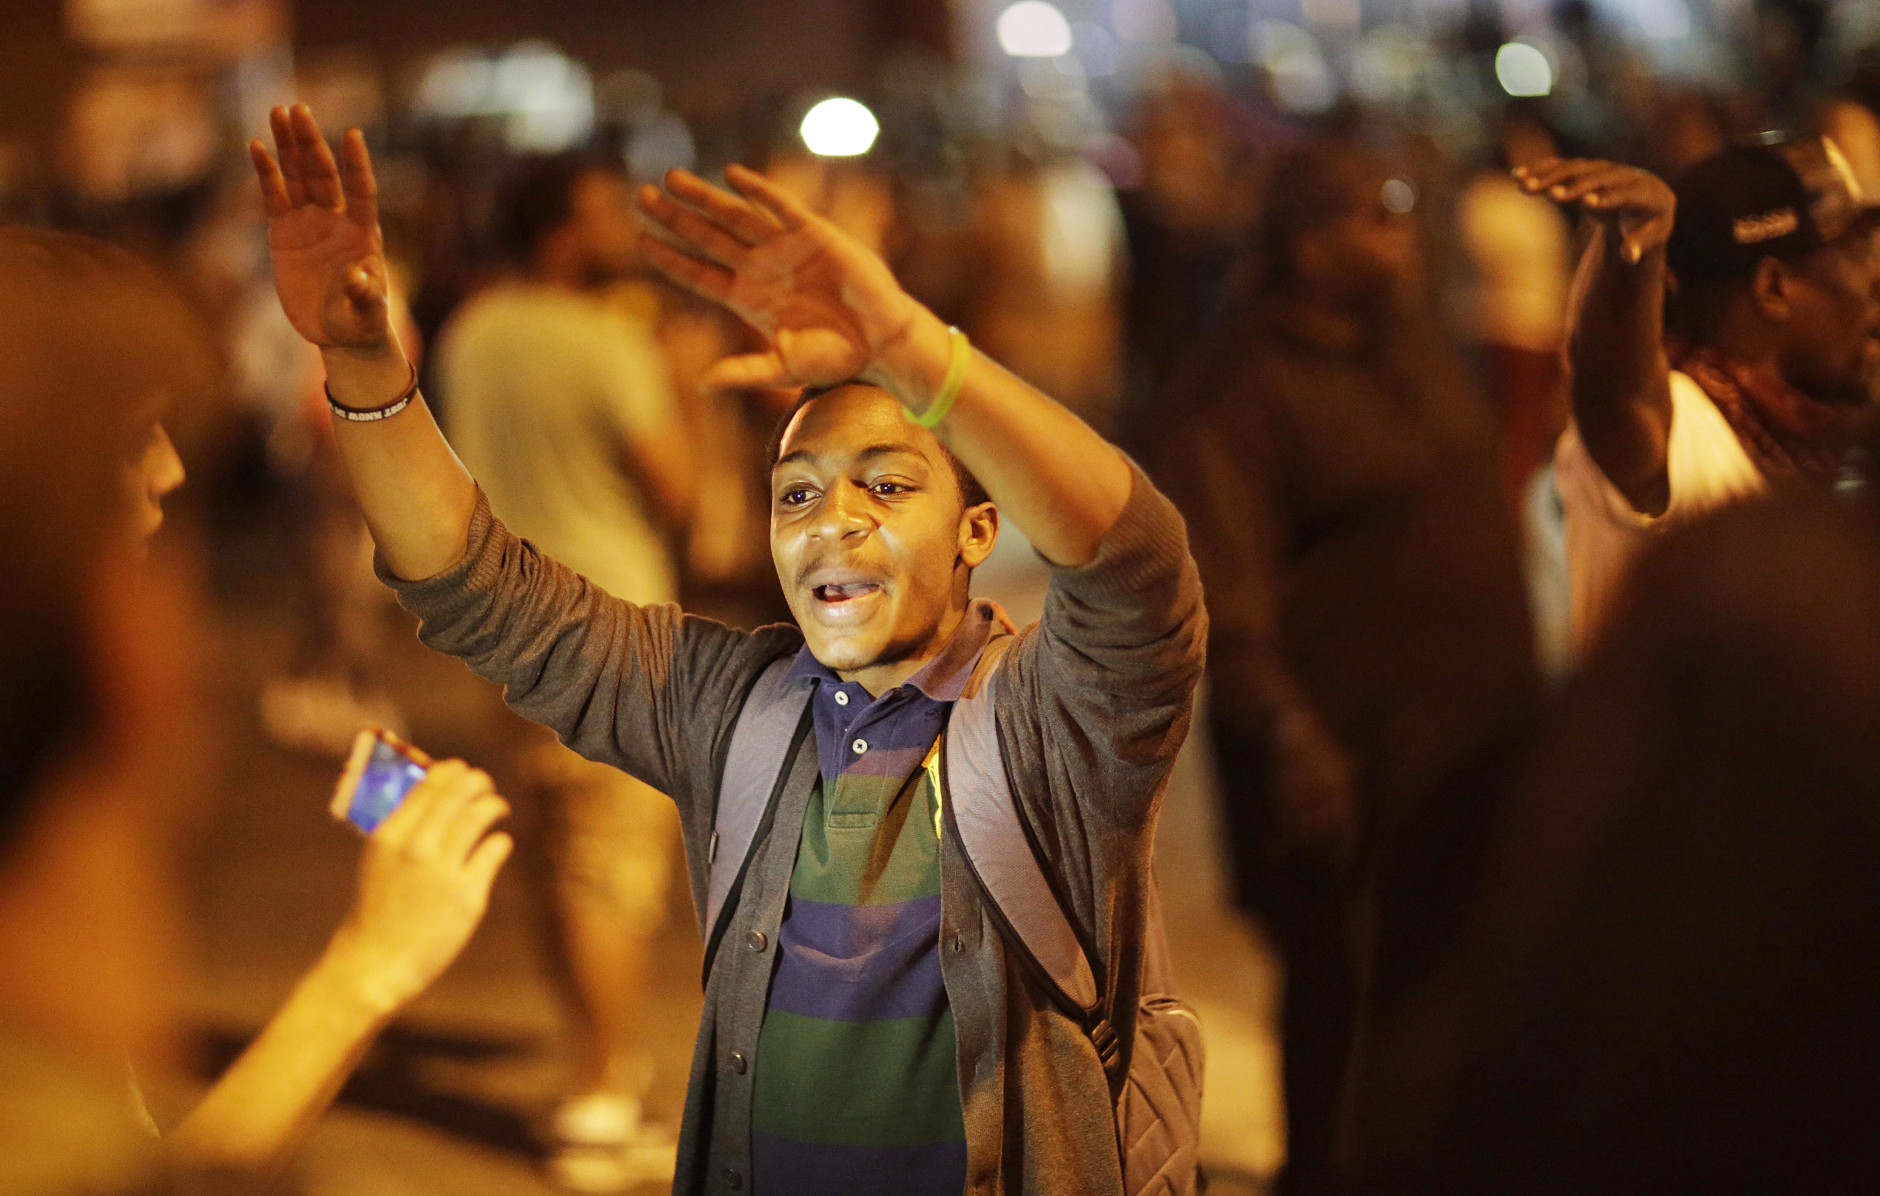 A man asks the crowd to back up in front of a line of police officers in riot gear as part of a community effort to disperse the crowd ahead of a 10 p.m. curfew in the wake of Monday's riots following the funeral for Freddie Gray, Tuesday, April 28, 2015, in Baltimore. (AP Photo/David Goldman)